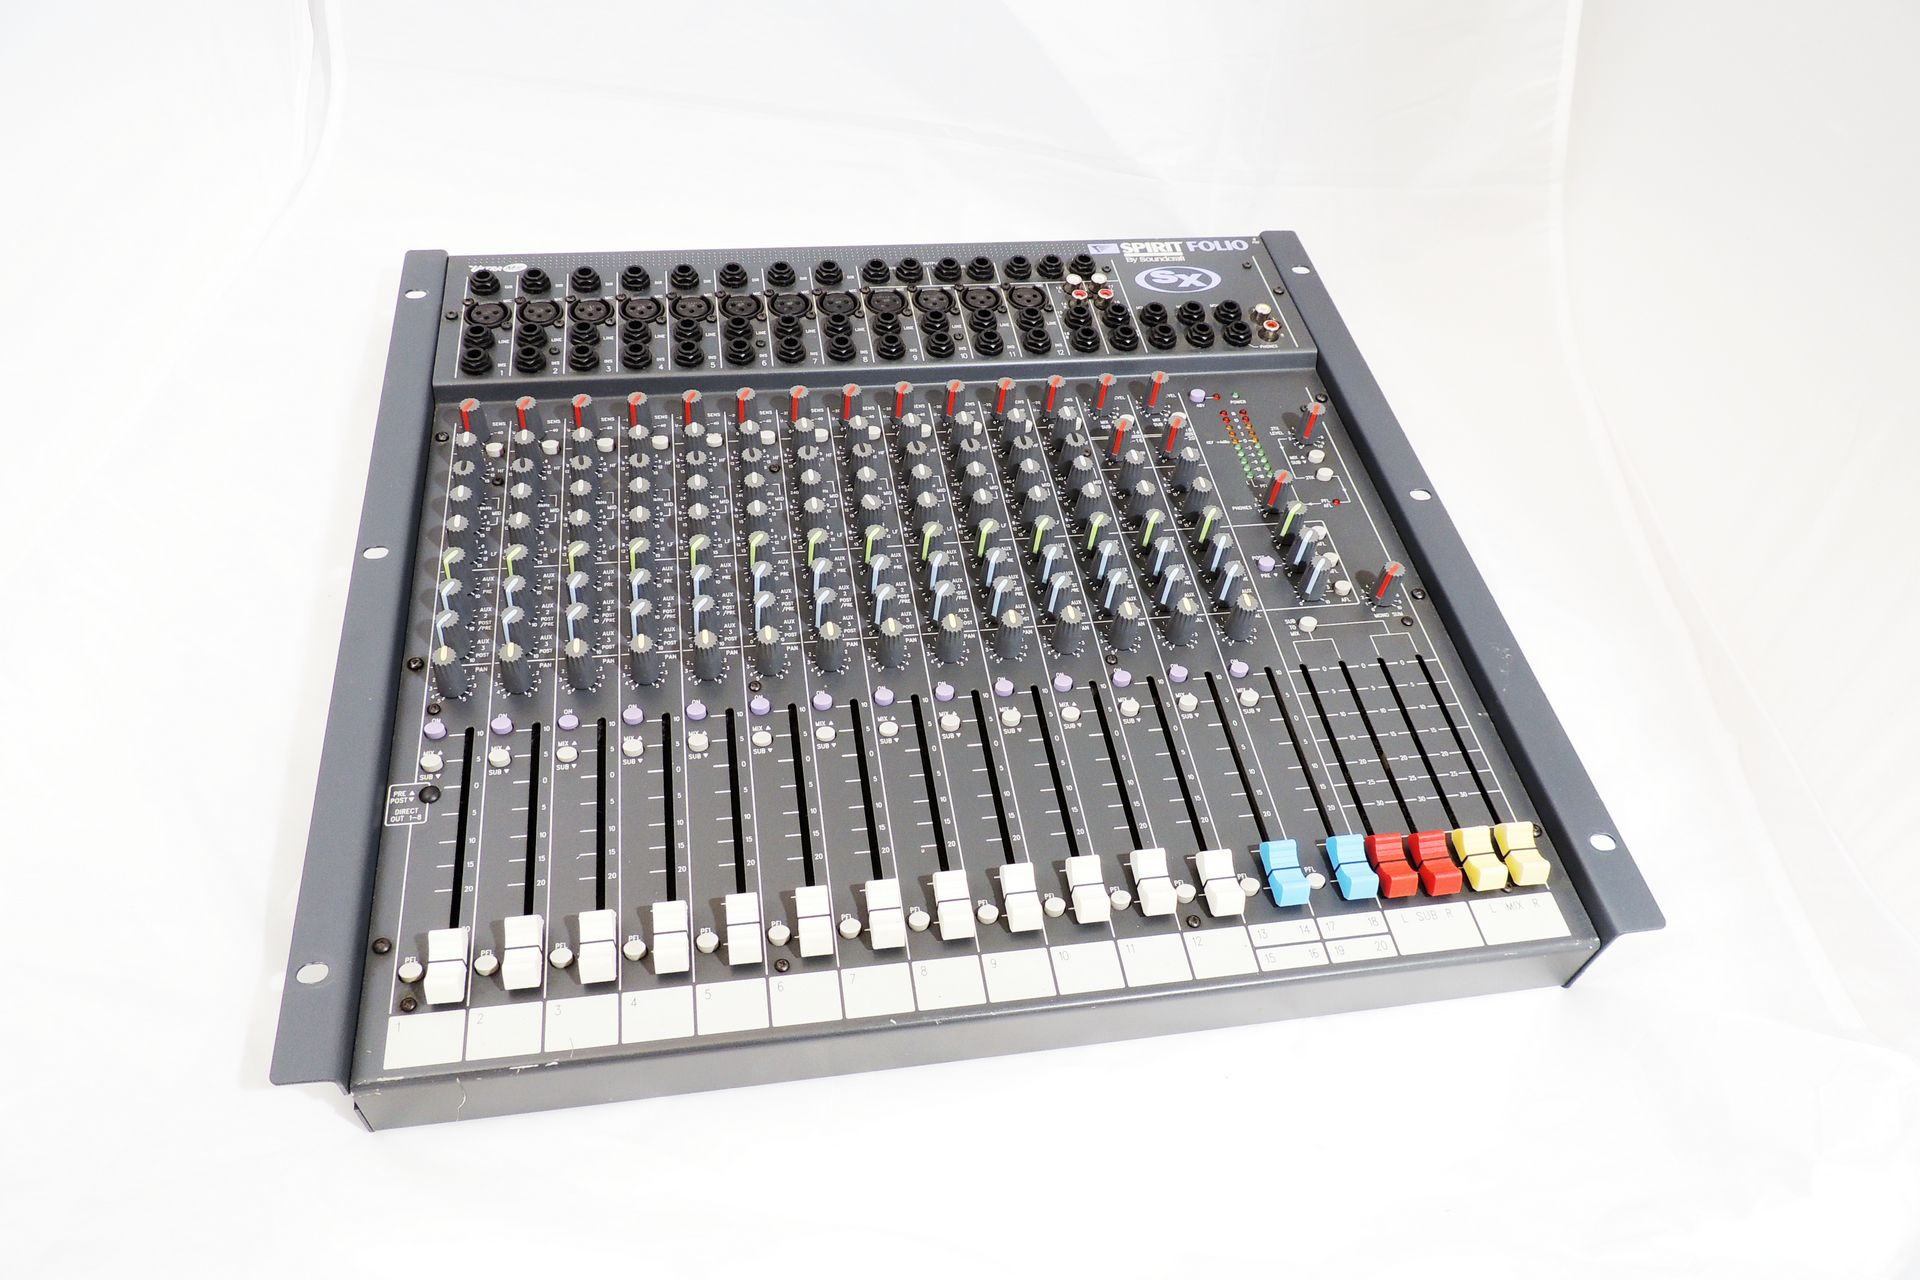 SPIRIT FOLIO SX 16:2 MIXING DESK